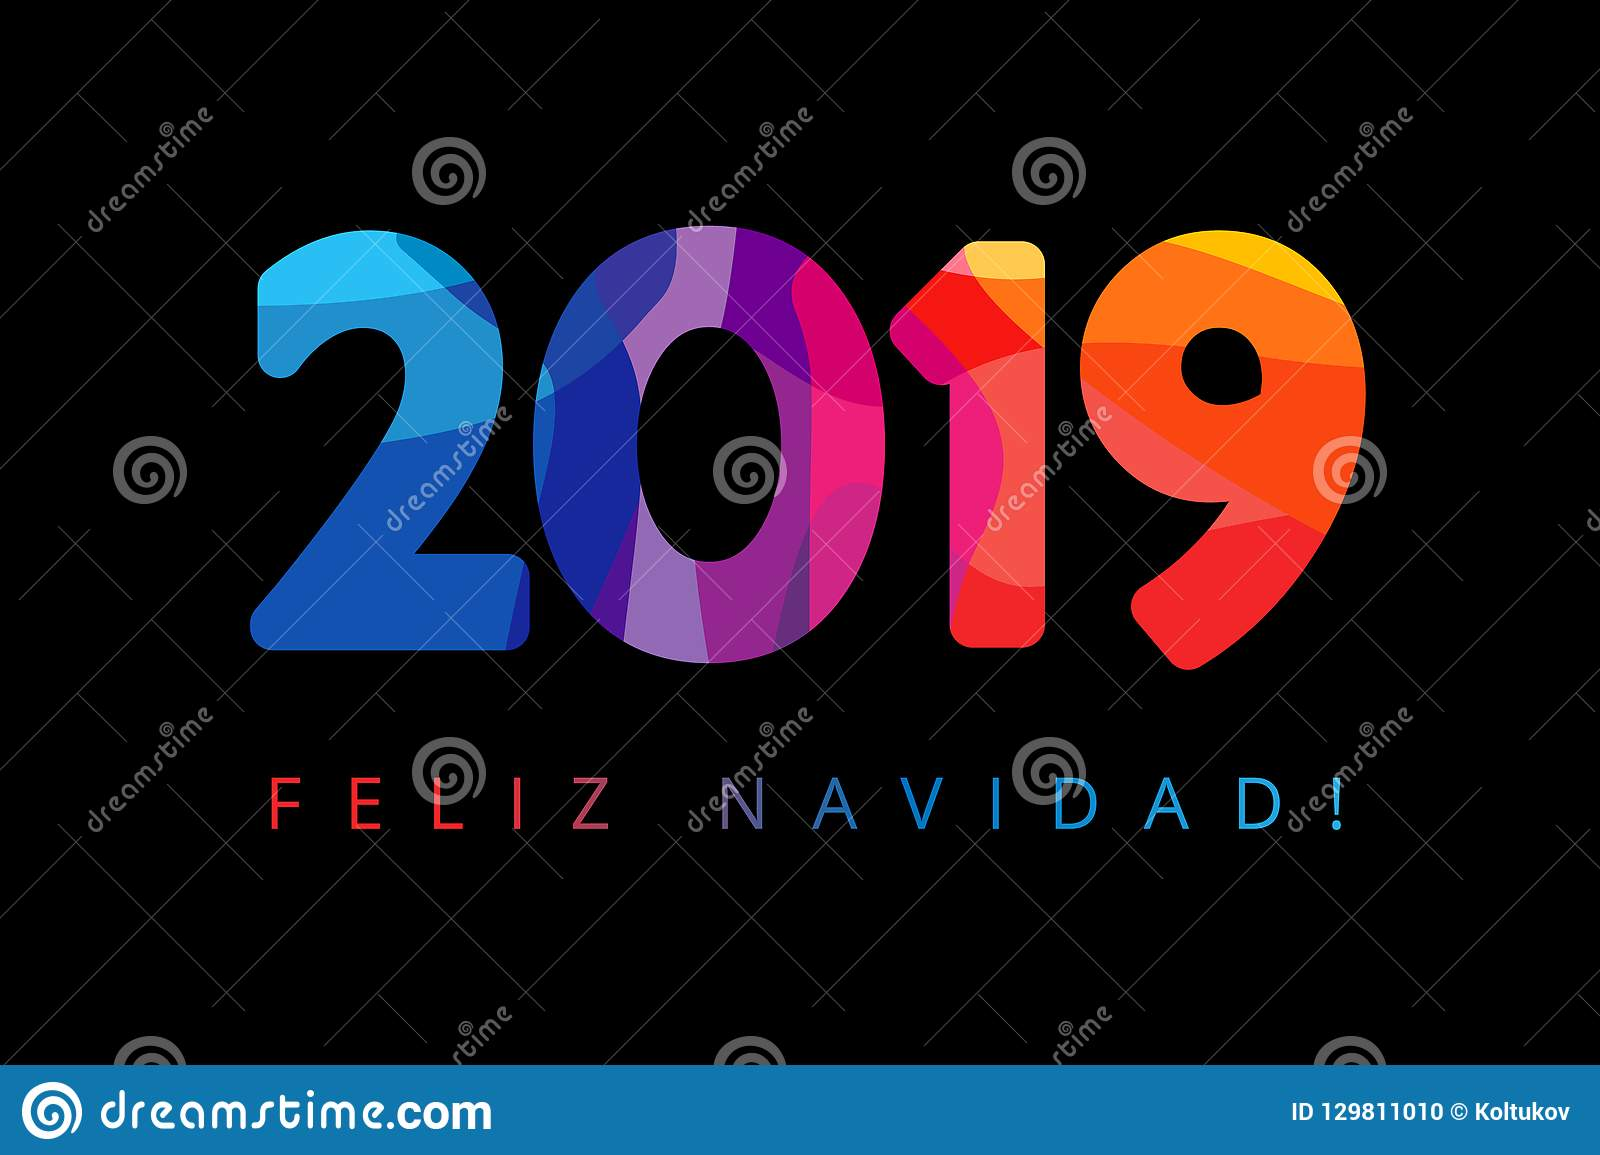 2019 feliz navidad xmas spanish greetings translate merry christmas holidays happy new